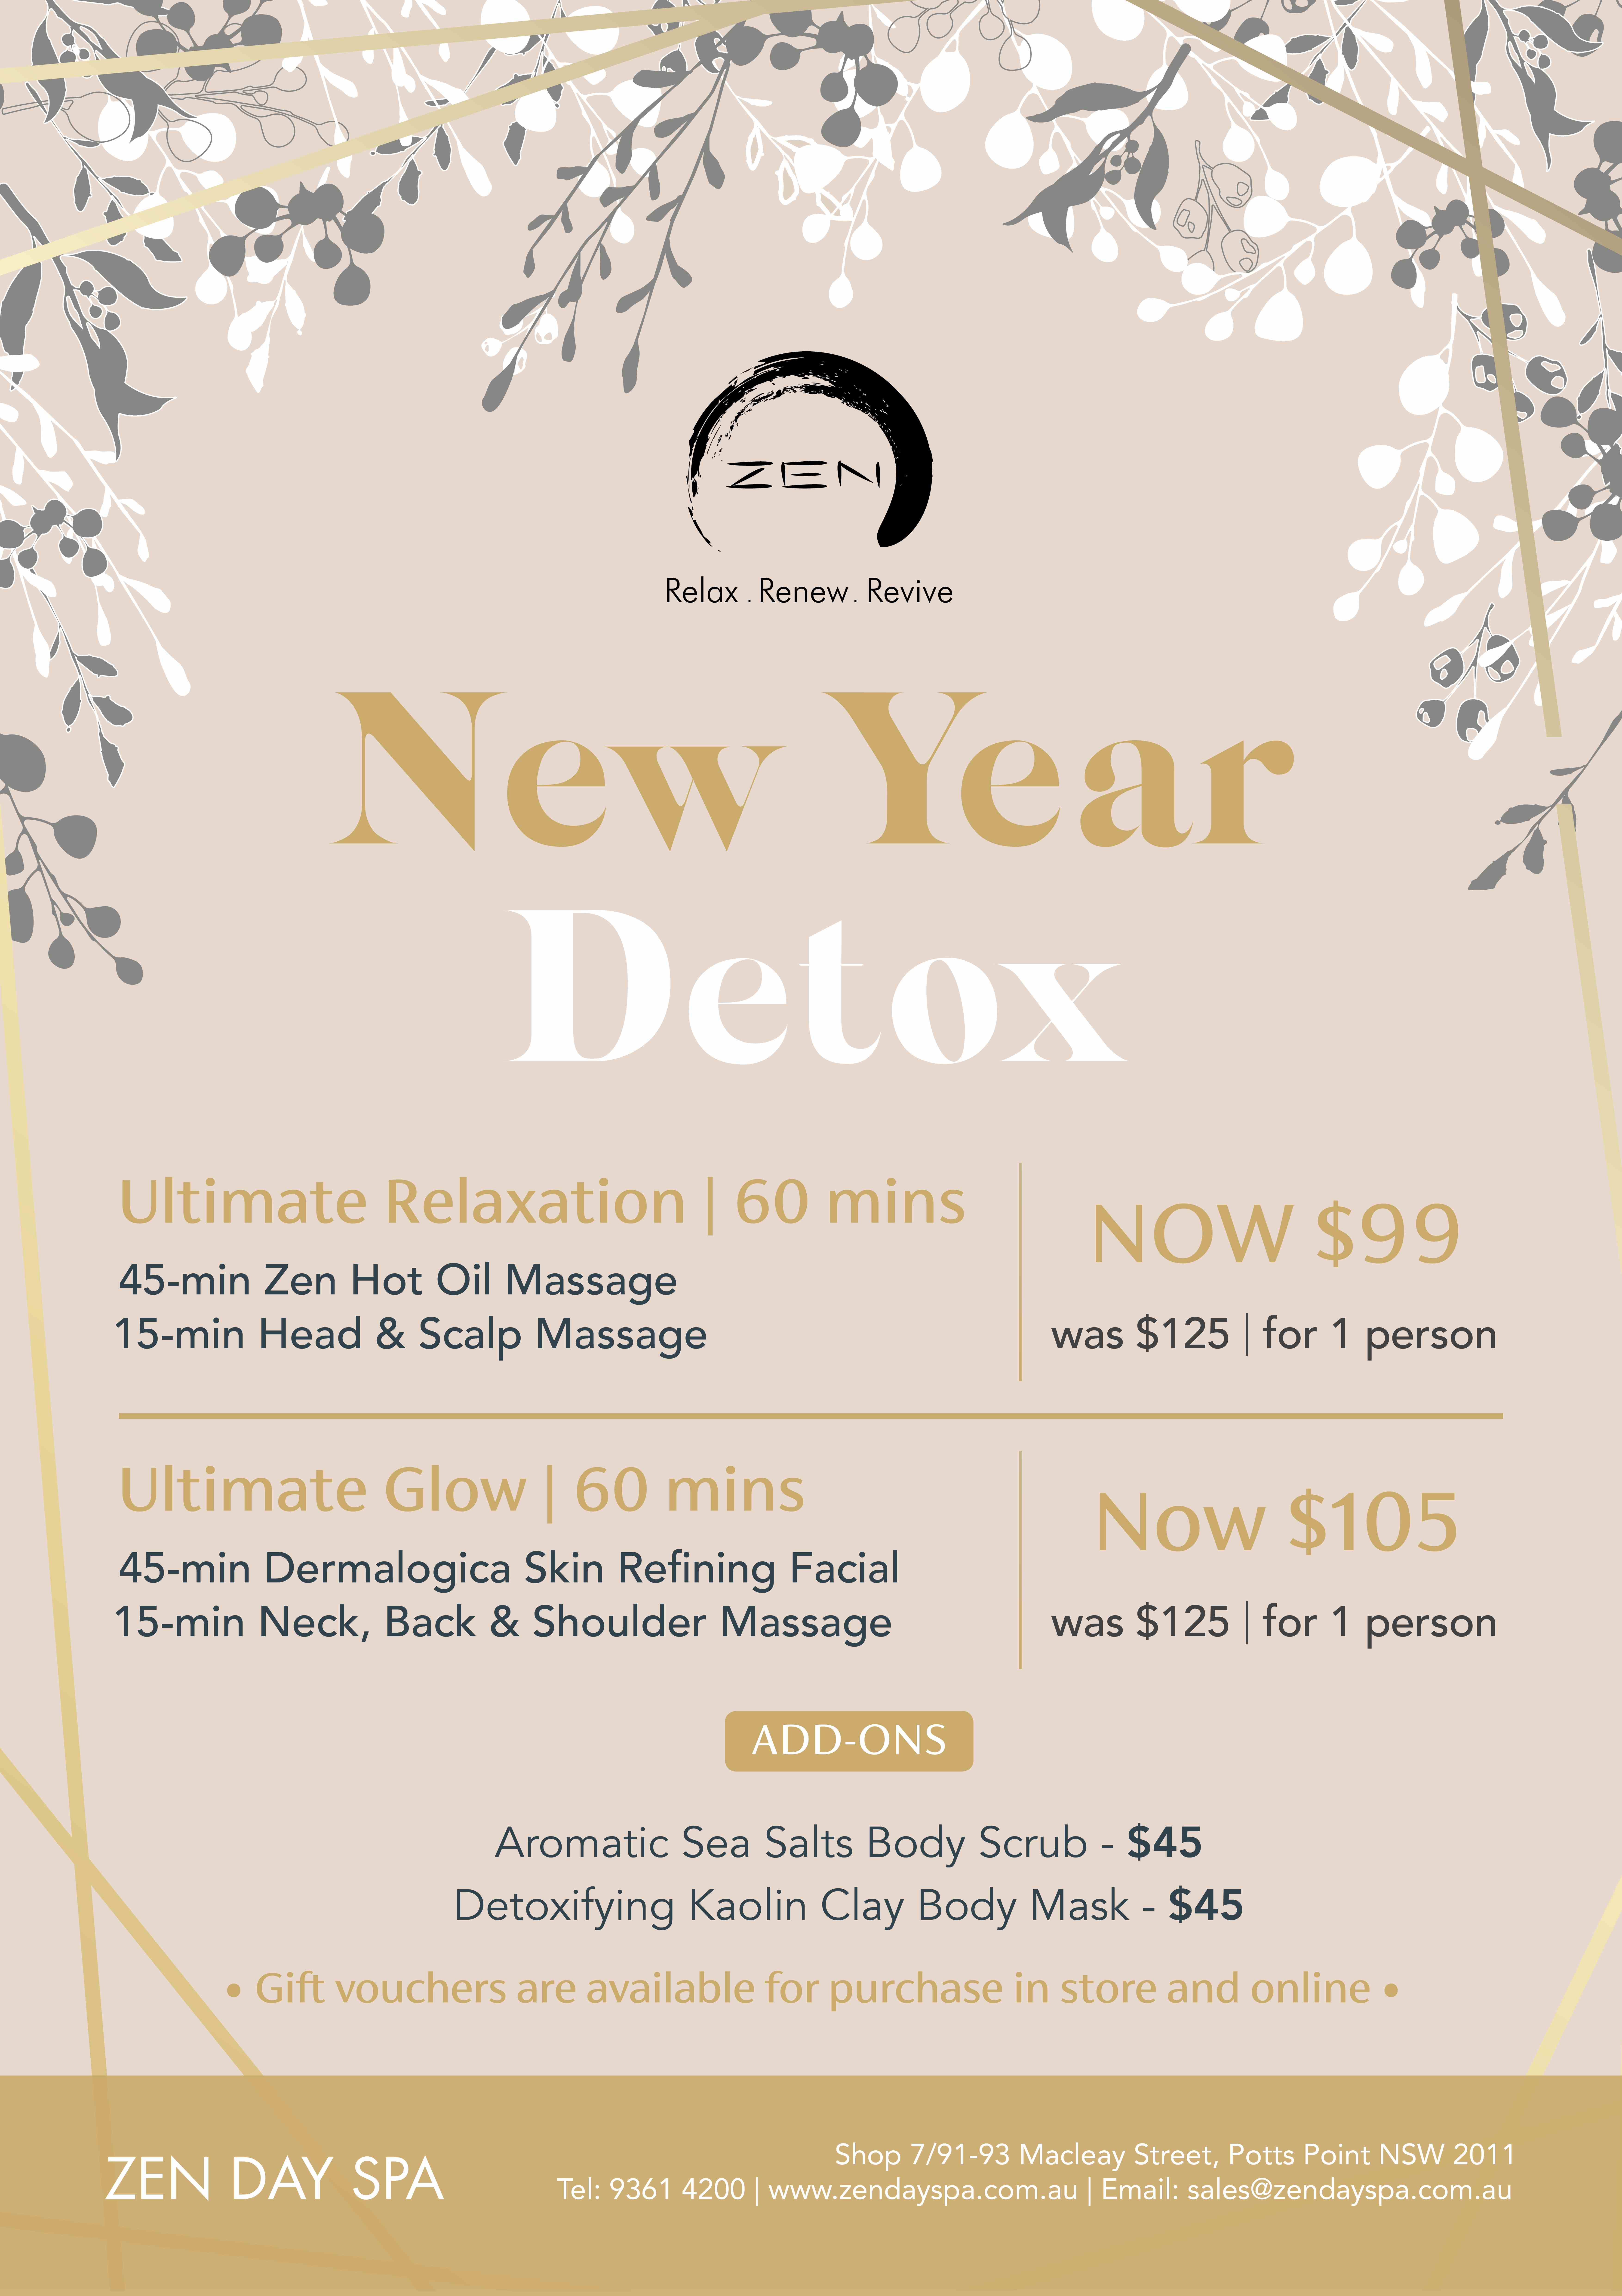 New Year Offer at Zen Day Spa